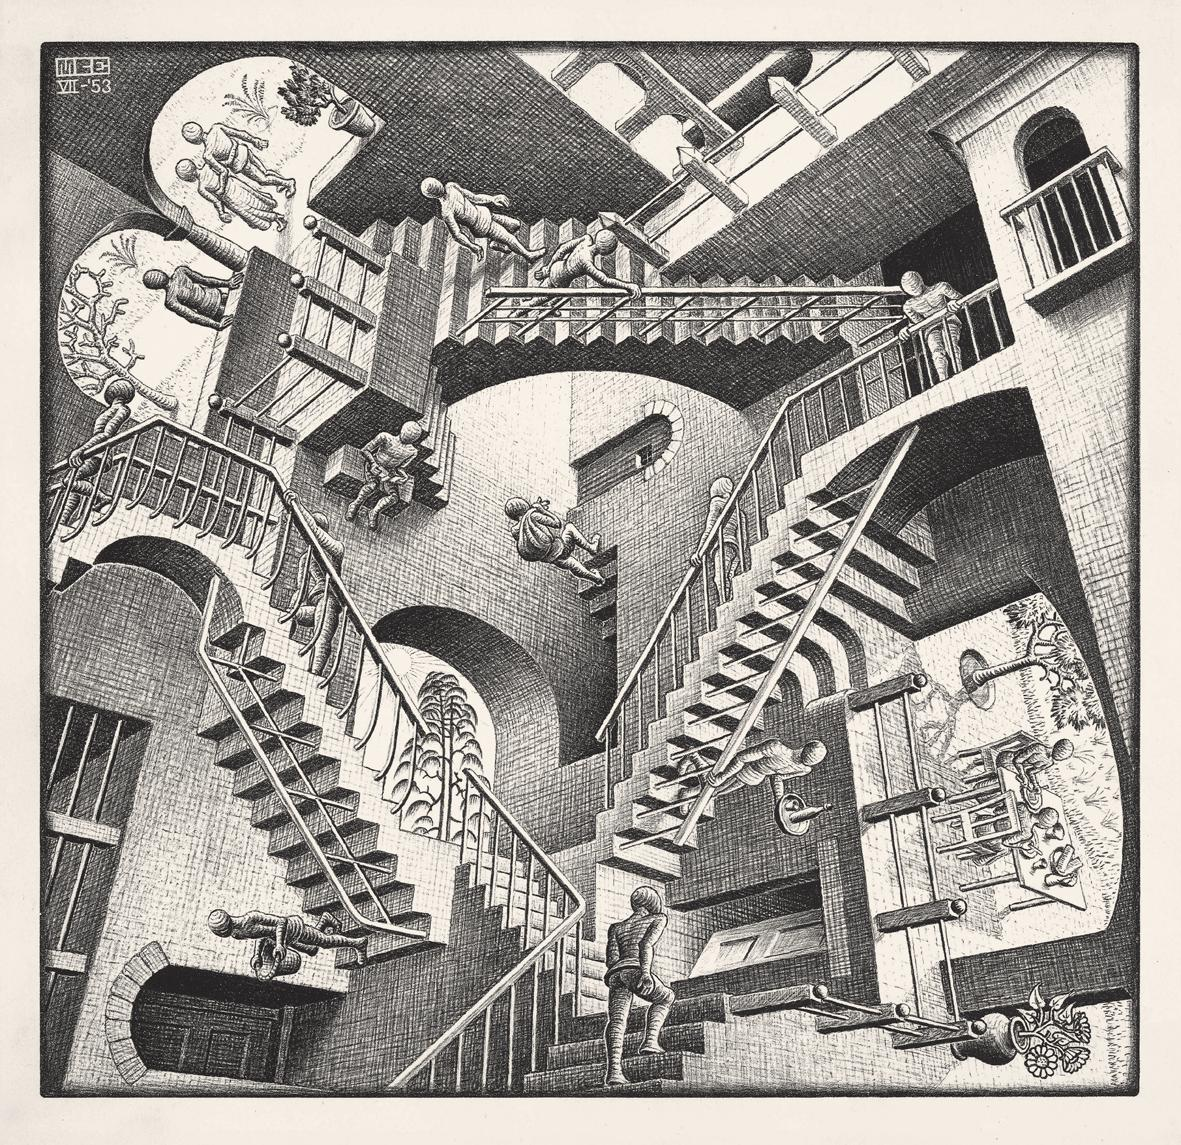 25: Relativity by M. C. Escher - Scott M. McDaniel